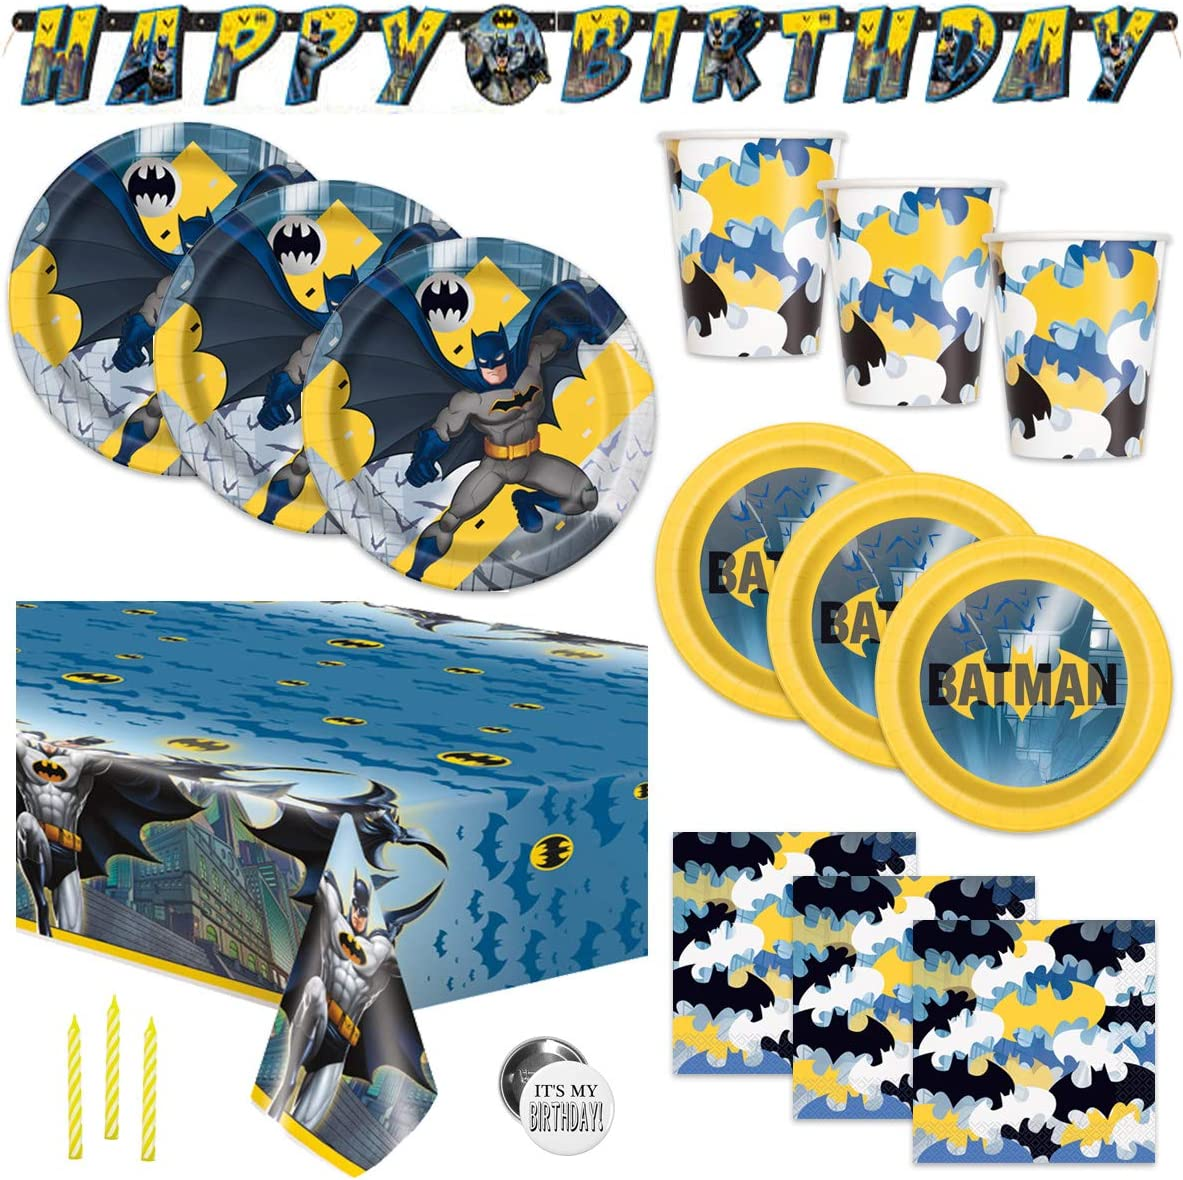 Batman Theme Birthday Party Supplies Set - Serves 16 Guests - Banner Decoration, Tablecover, Plates, Cups, Napkins, Candles, Button